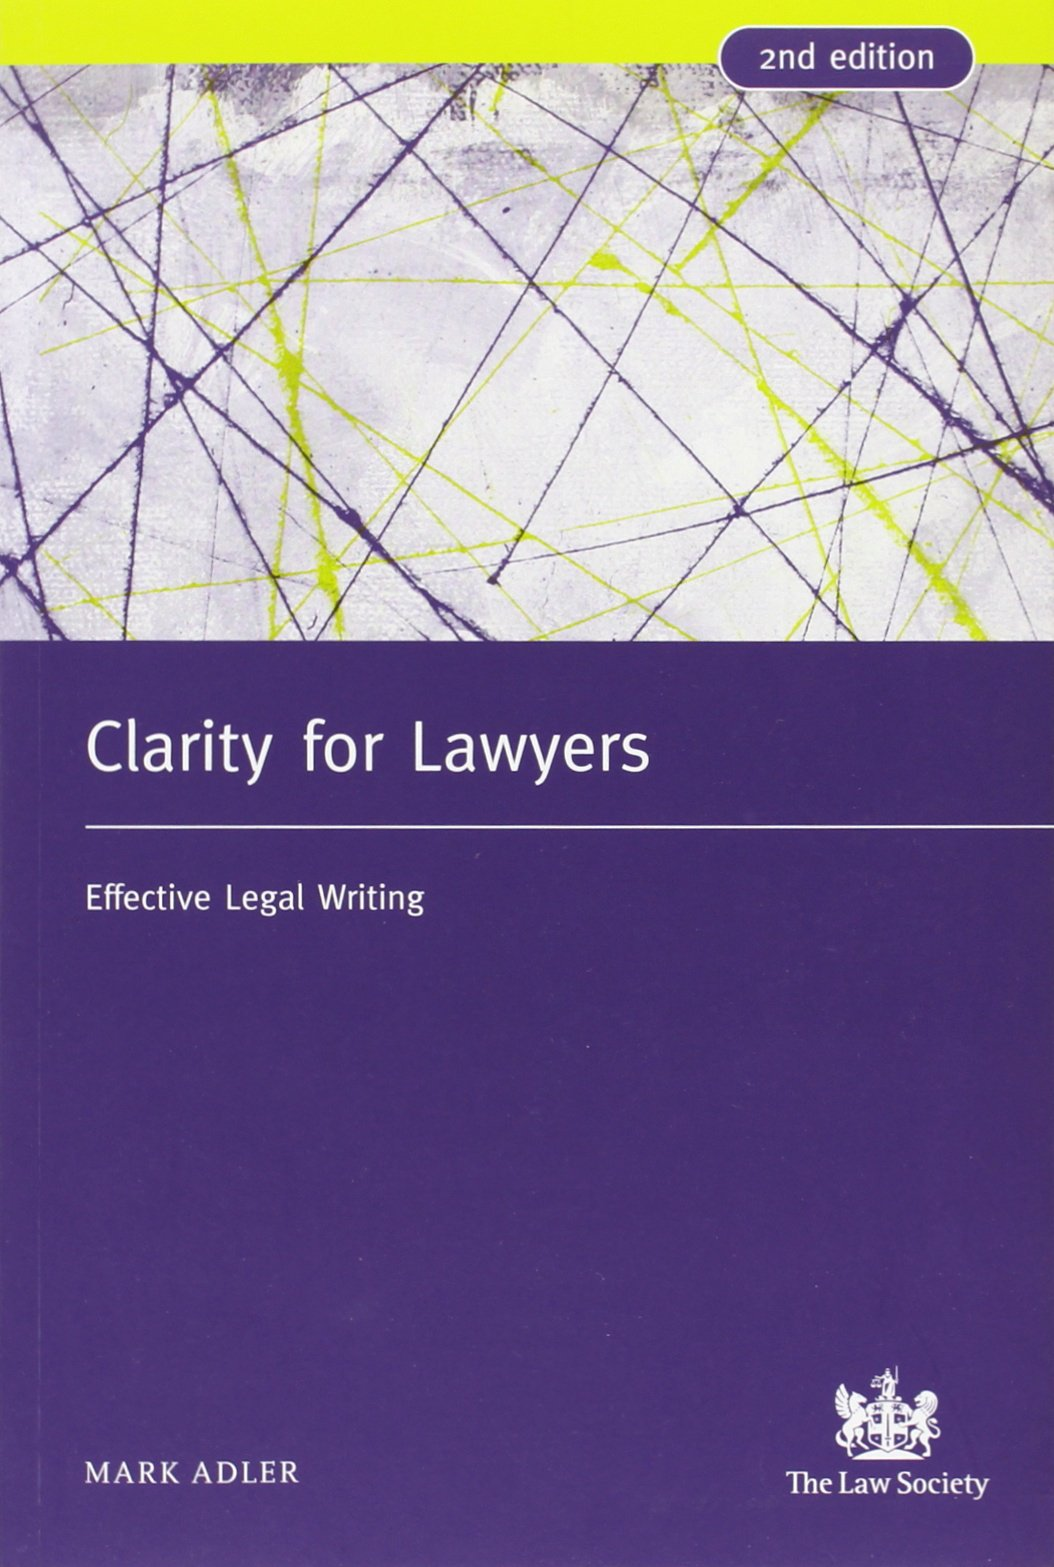 CLARITY FOR LAWYERS